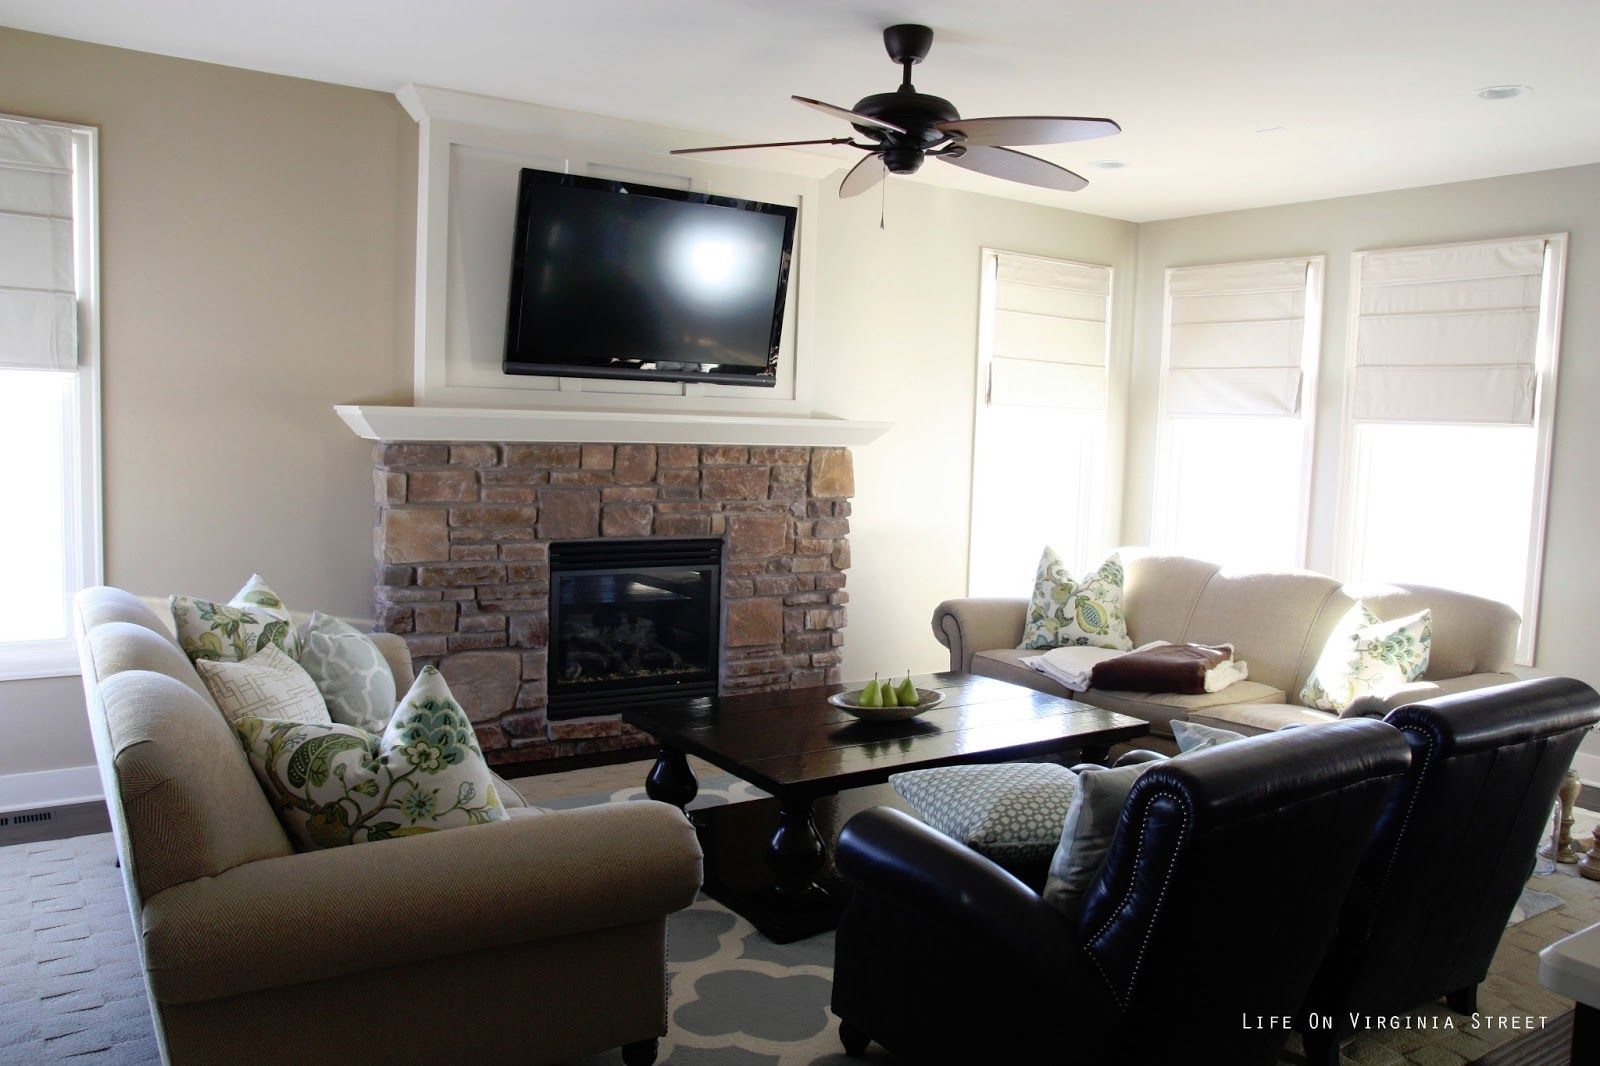 incredible behr paint living room | Life On Virginia Street: Painting the Living Room: Behr ...